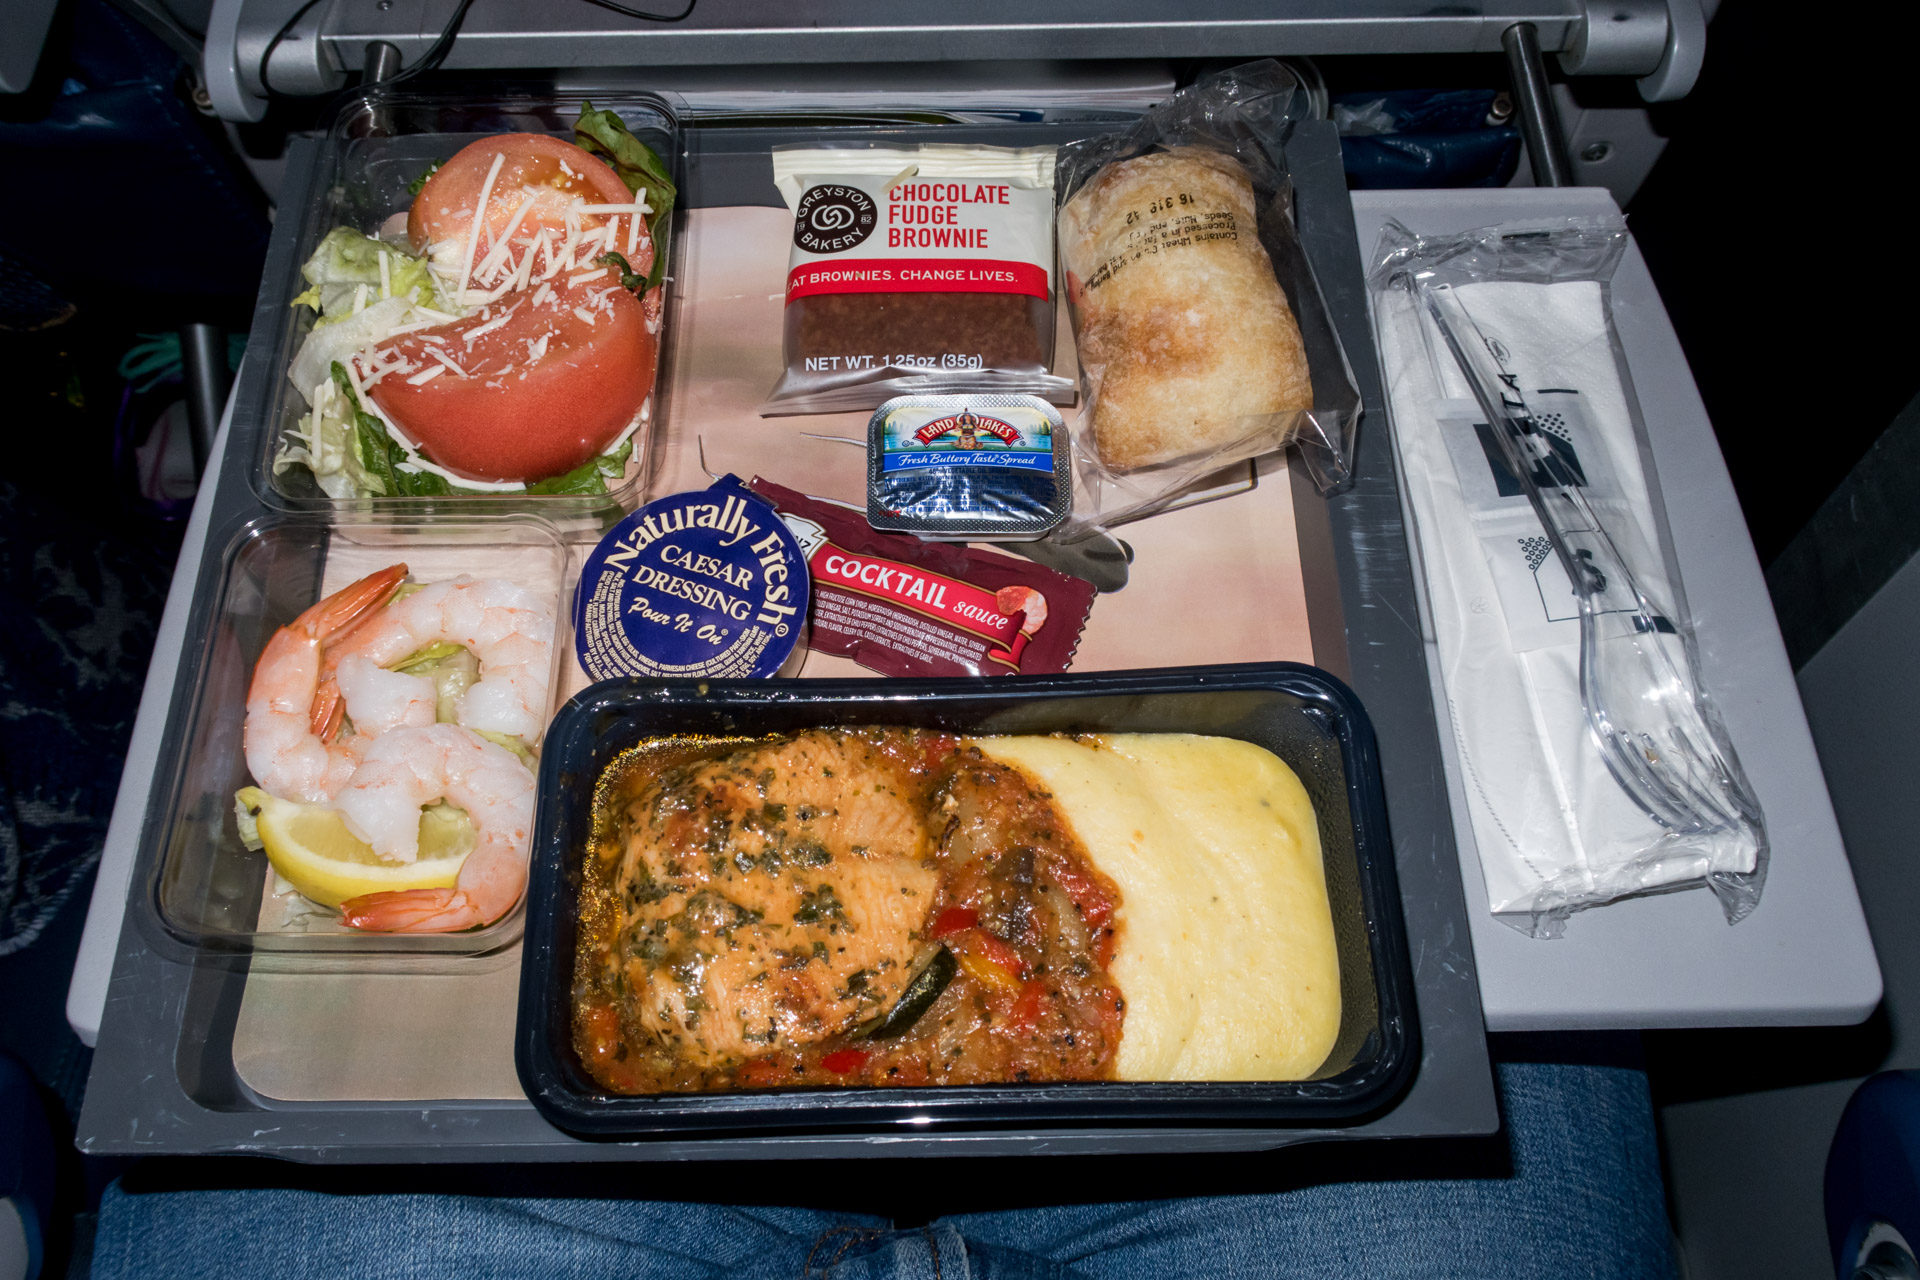 Flight Report: Delta Air Lines 747-400 from Detroit to Tokyo